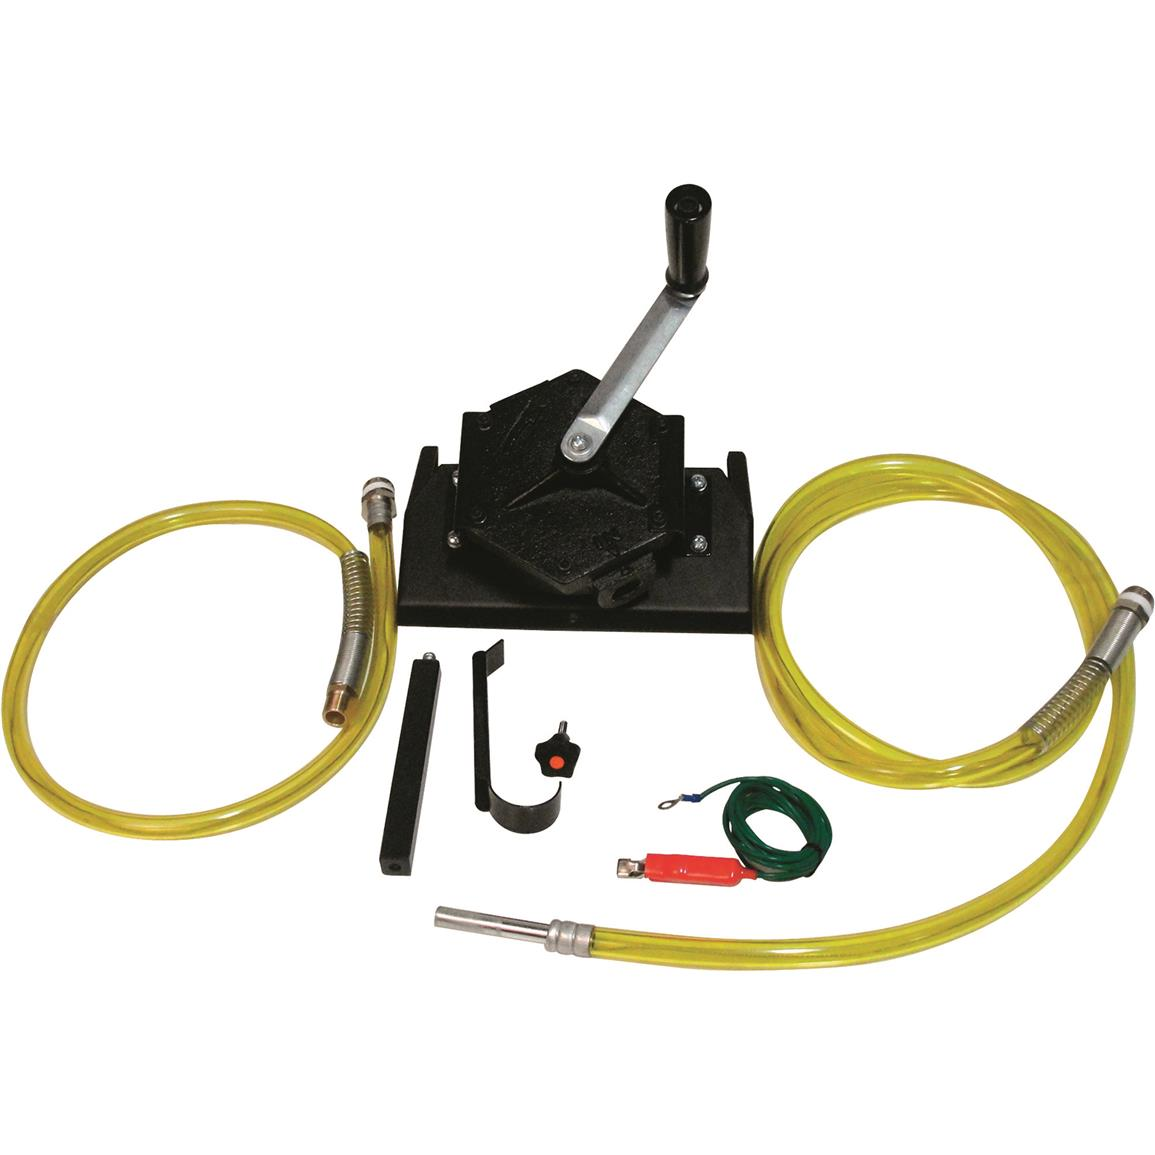 Roughneck 2-Way Rotary Pump Kit